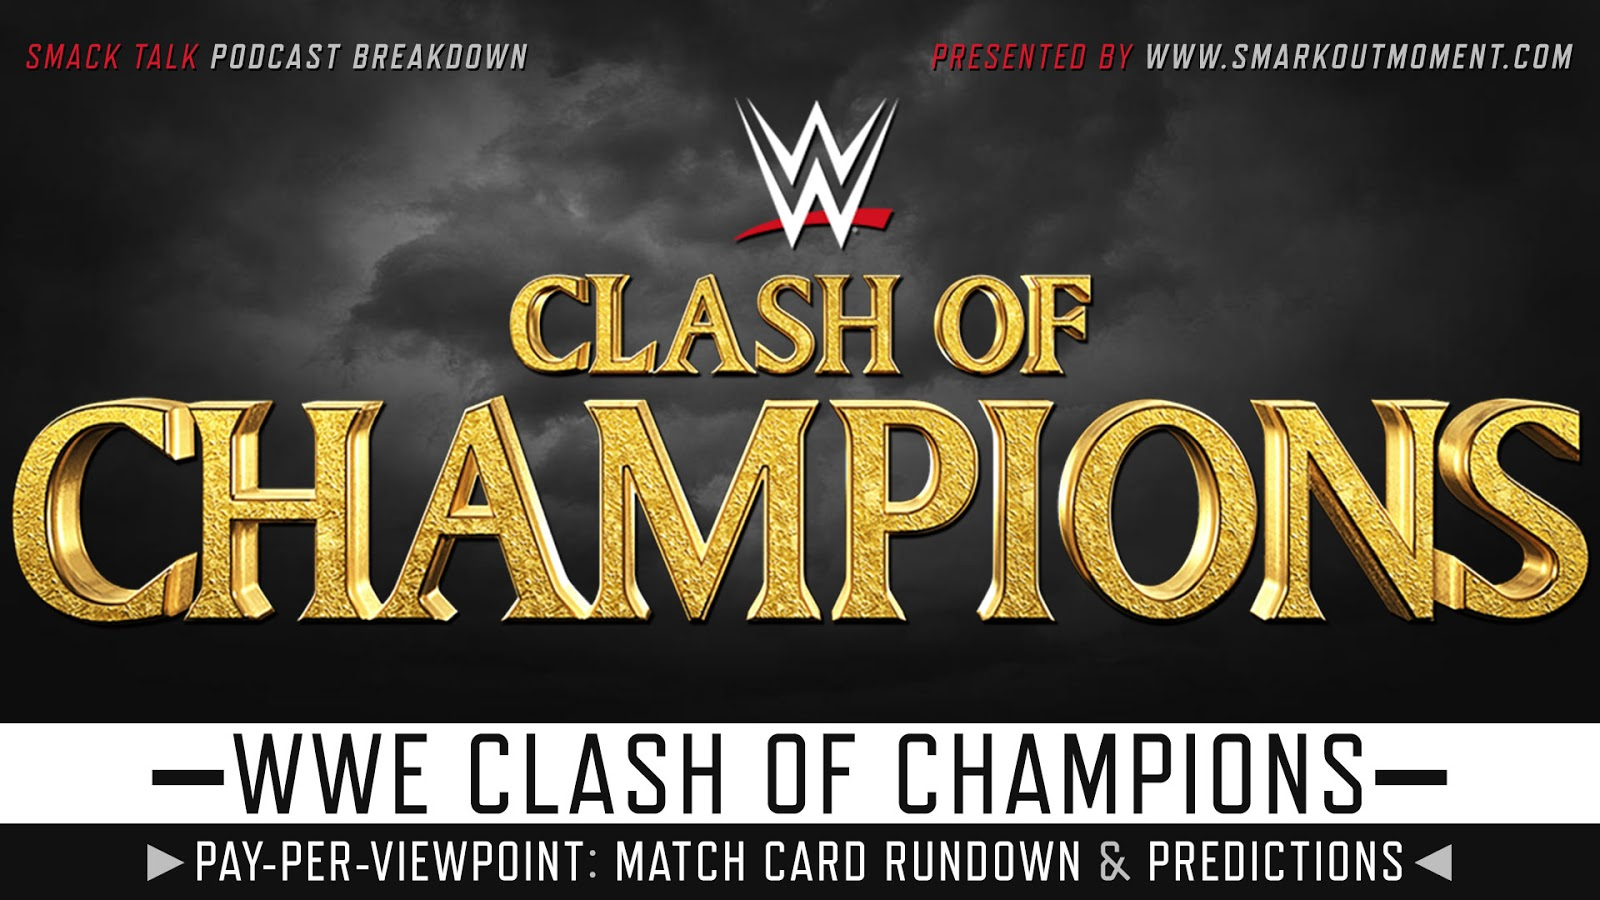 WWE Clash of Champions 2020 spoilers podcast